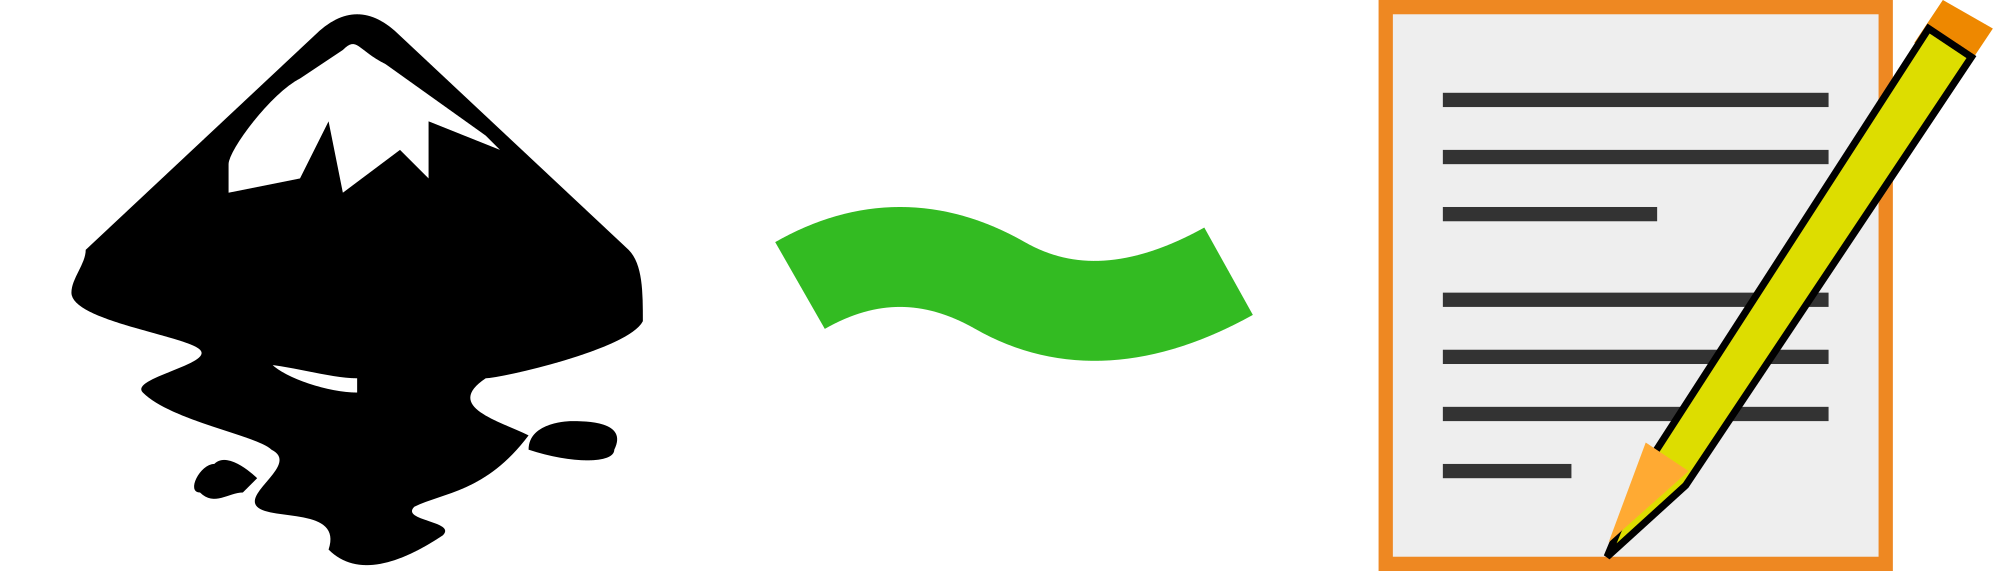 Inkspace svg file. Inkscape smoothed wikimedia commons